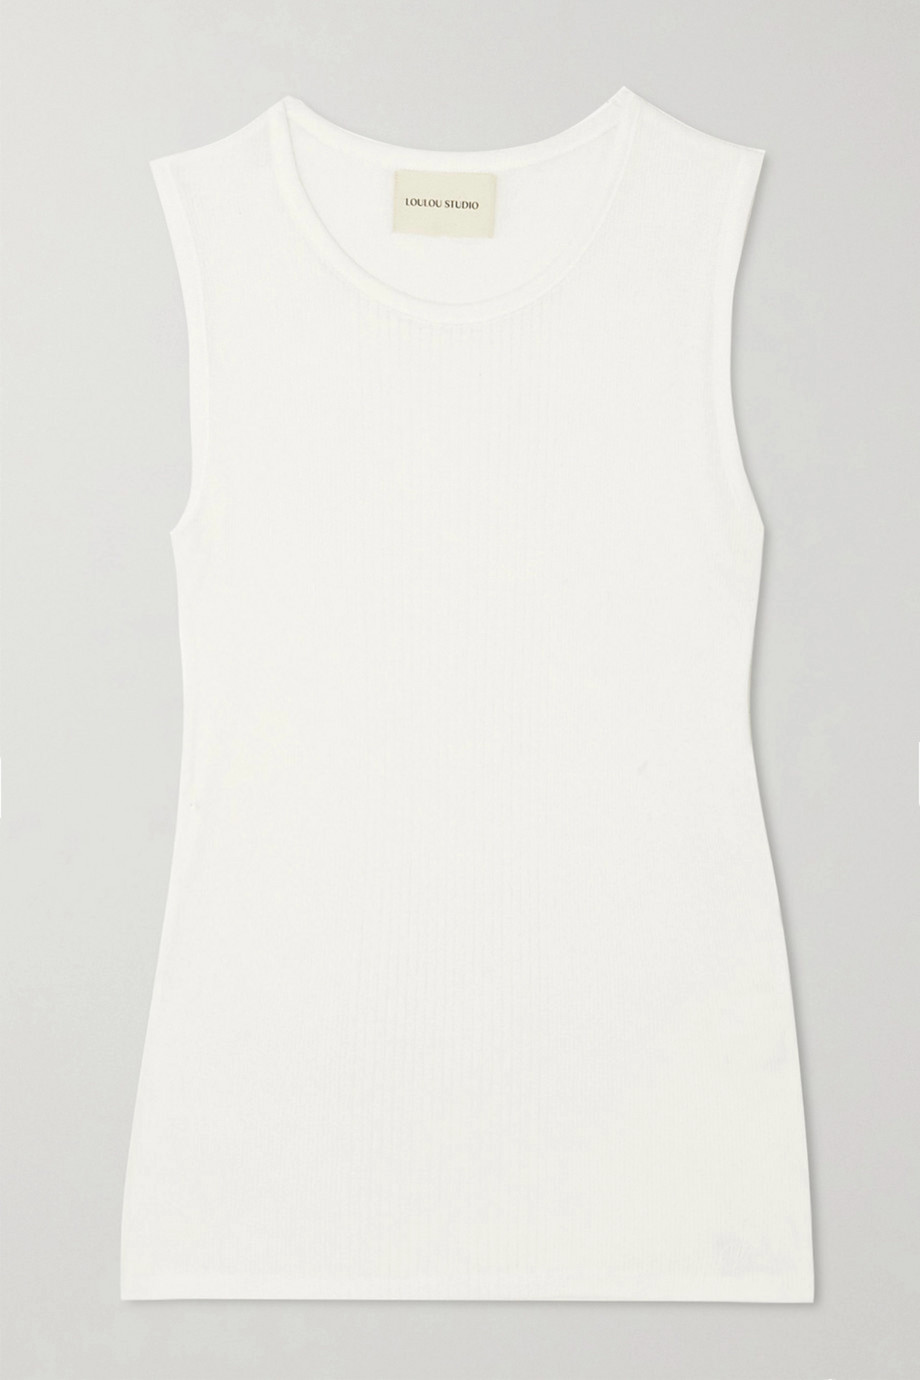 LOULOU STUDIO Fatu ribbed cotton tank